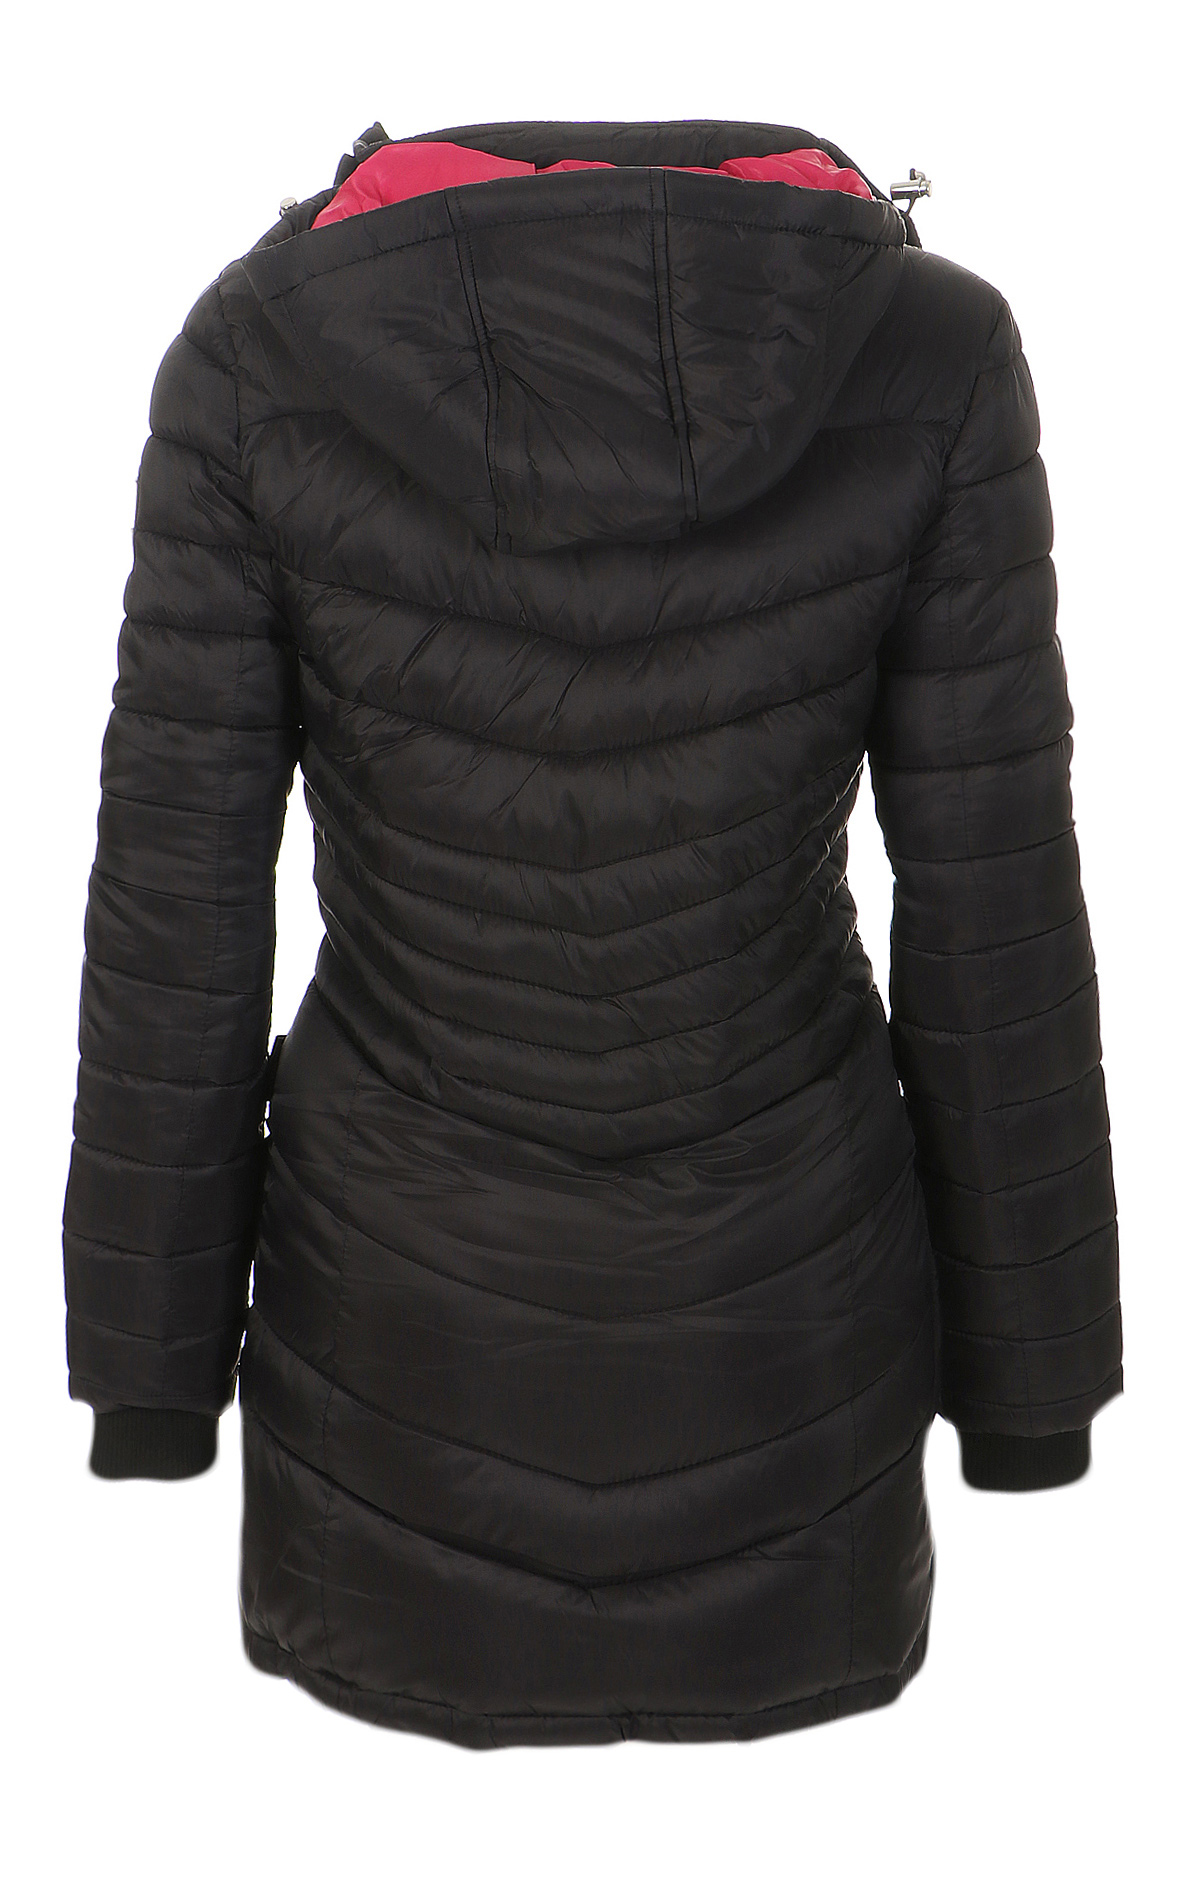 geographical norway ladies winter jacket coat padded. Black Bedroom Furniture Sets. Home Design Ideas